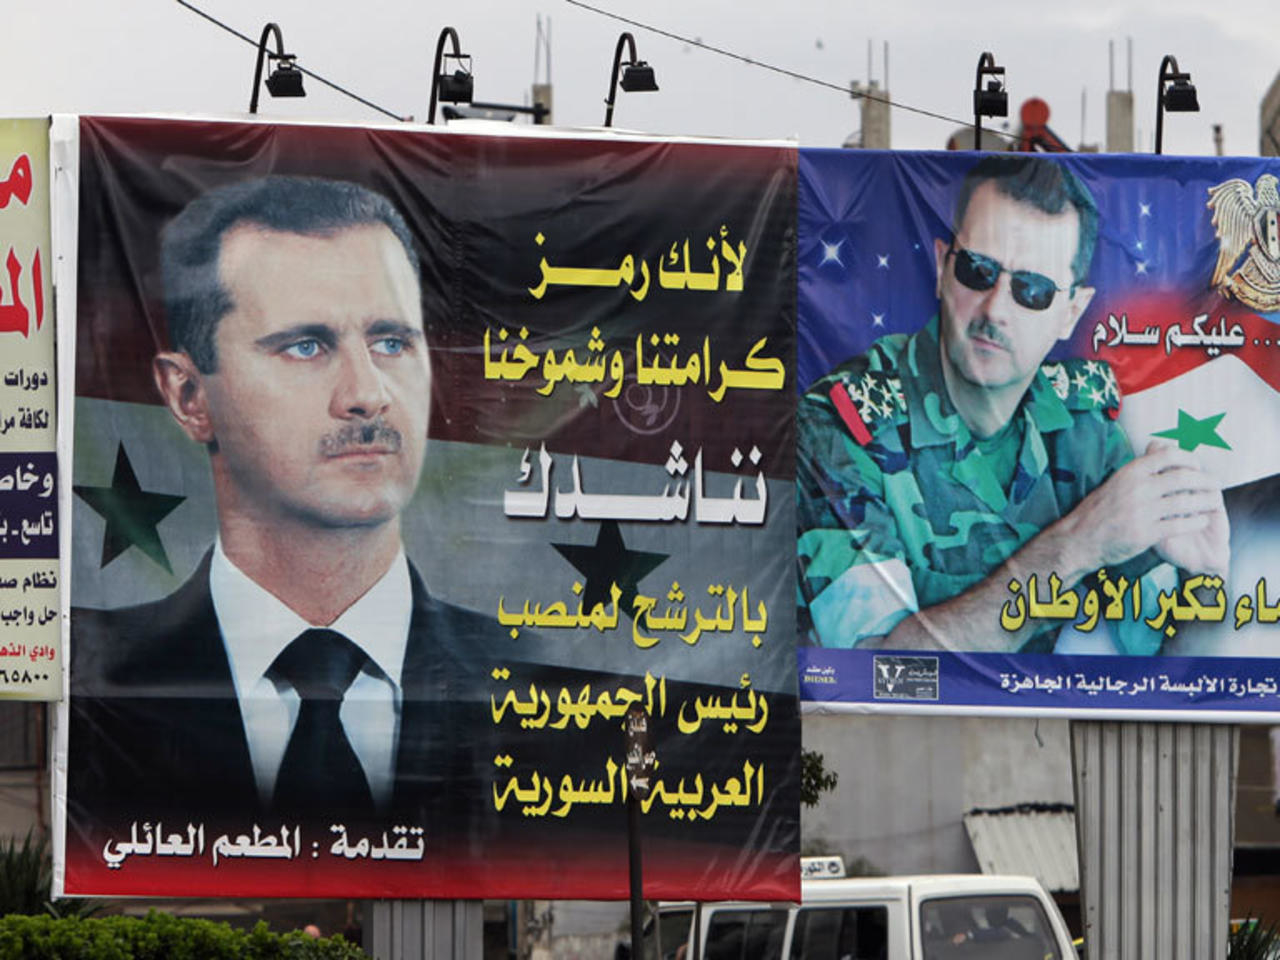 Poster-size photograph of the head of the Syrian regime Bashar al-Assad, with an inscription expressing support for his decision to run for the Syrian presidential elections—2014 (AFP)